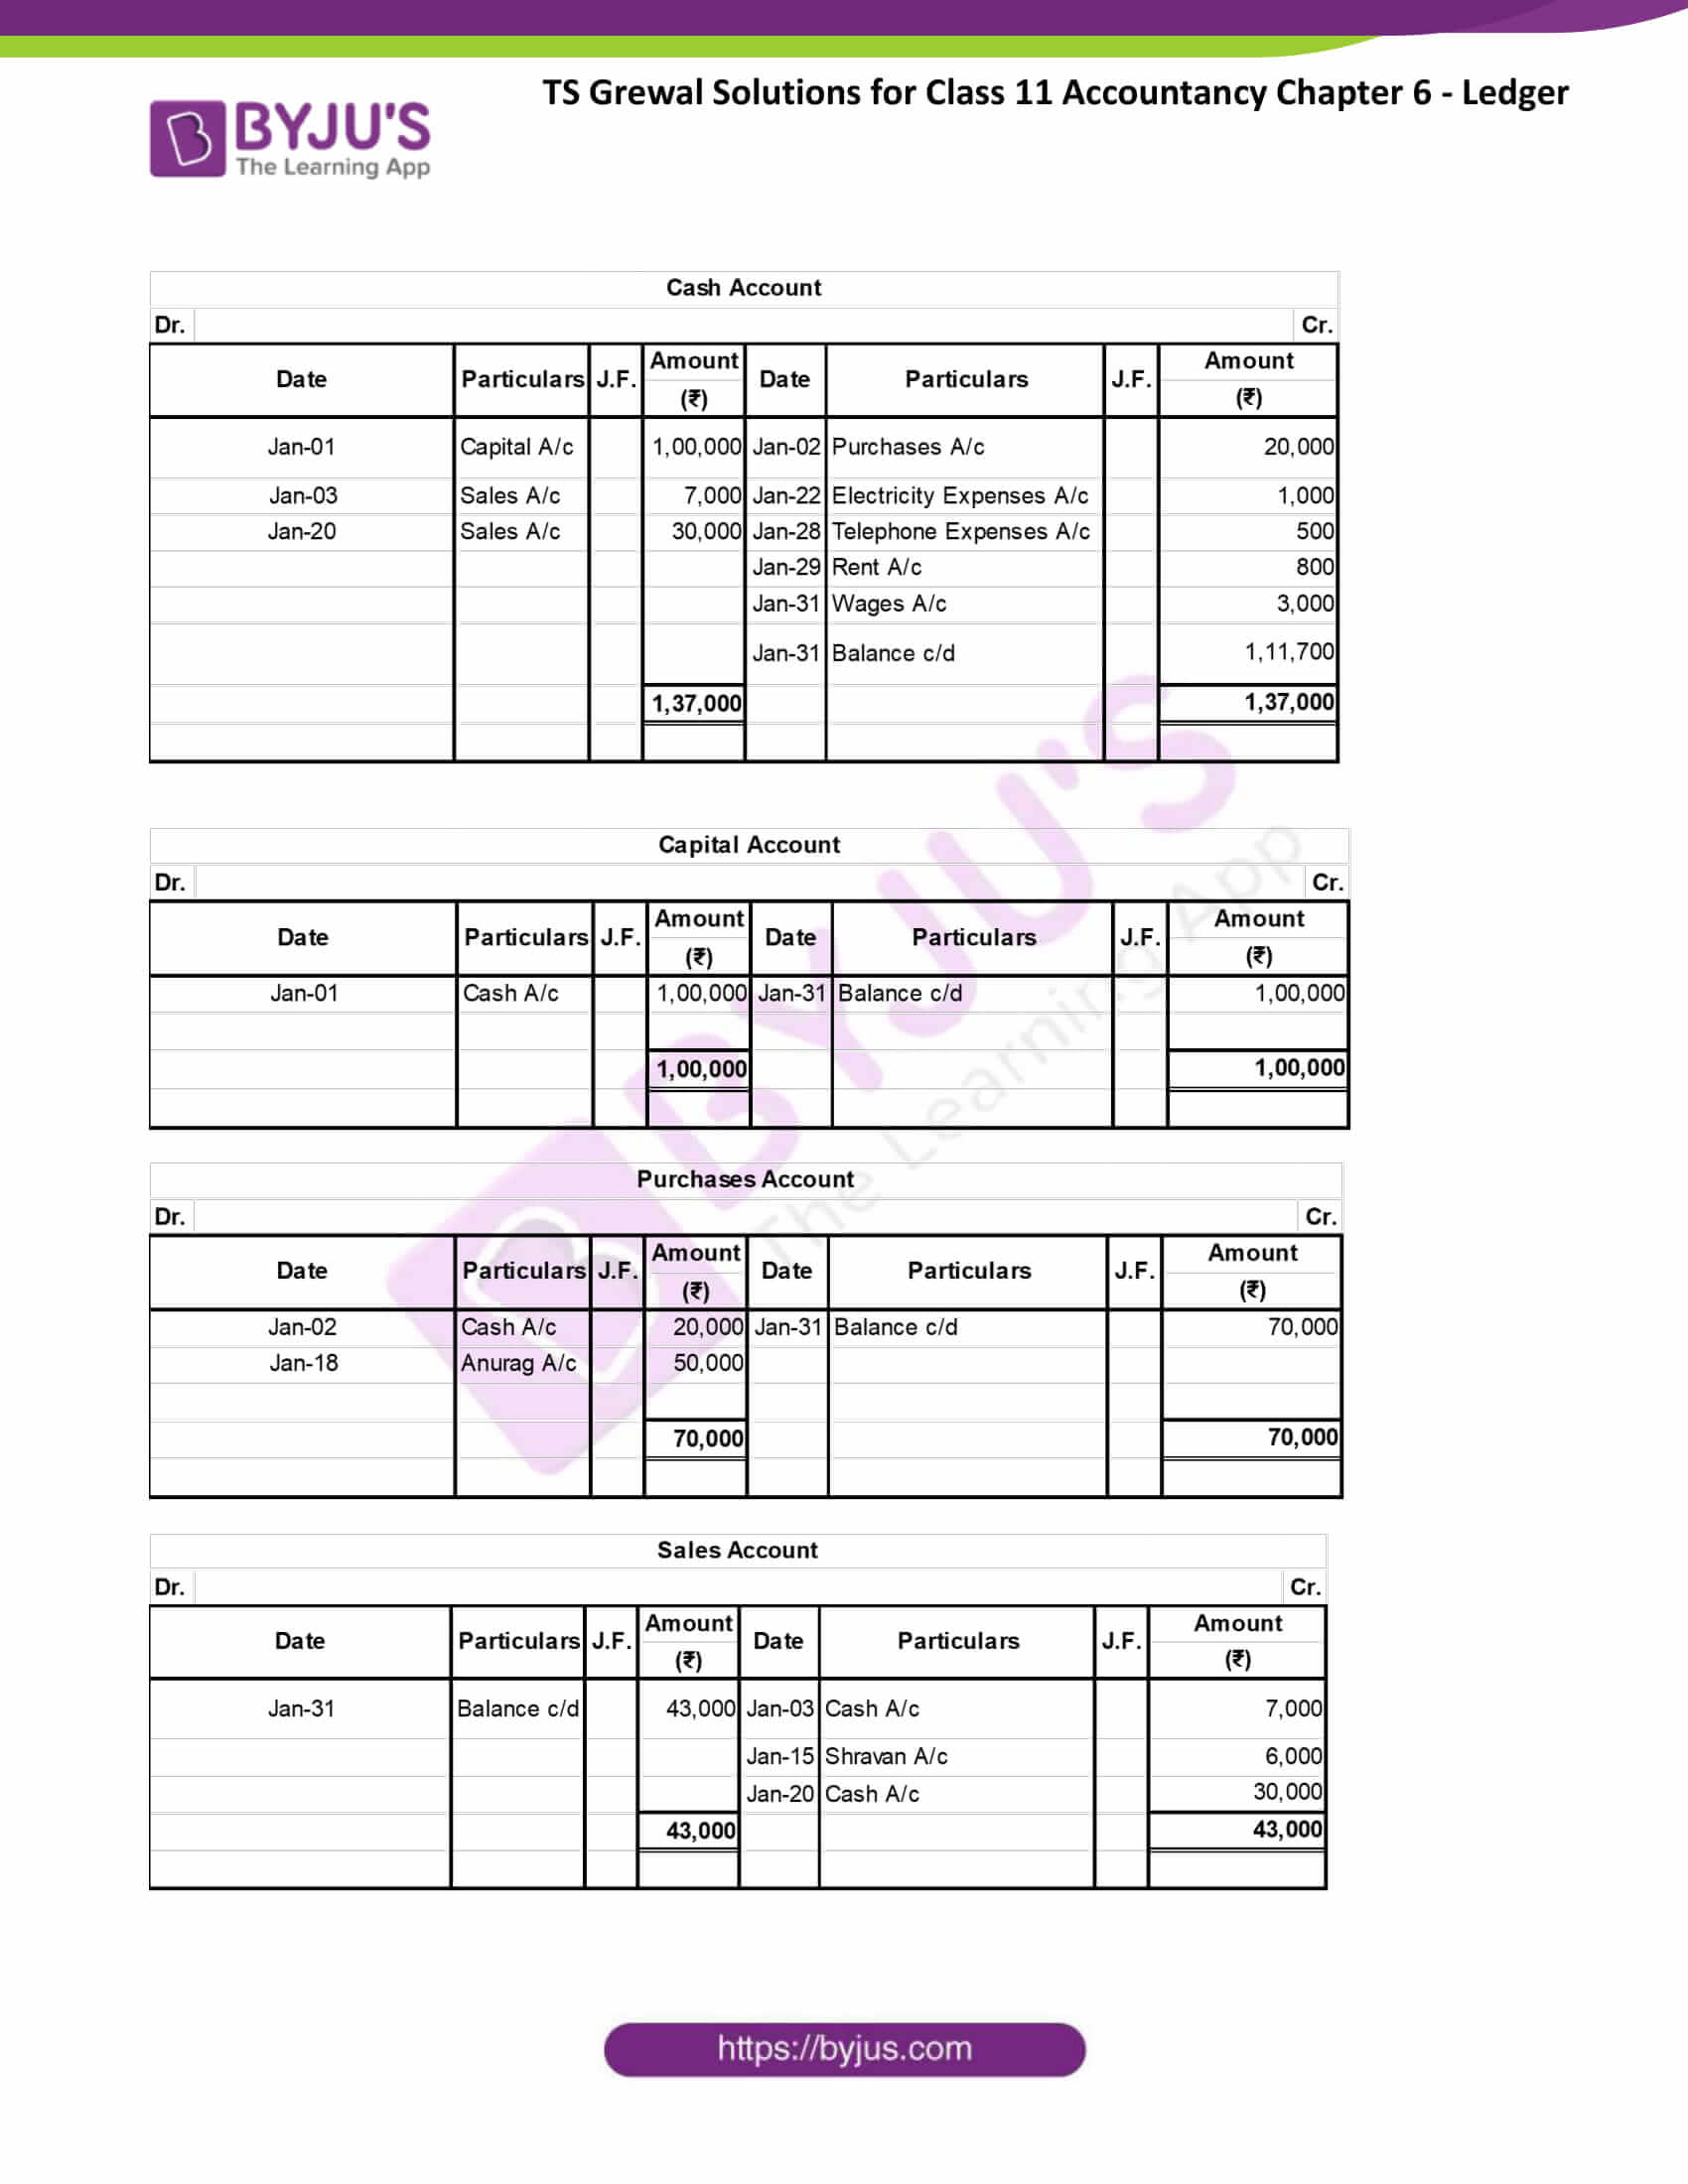 ts grewal class 11 accountancy chapter 6 ledger 07